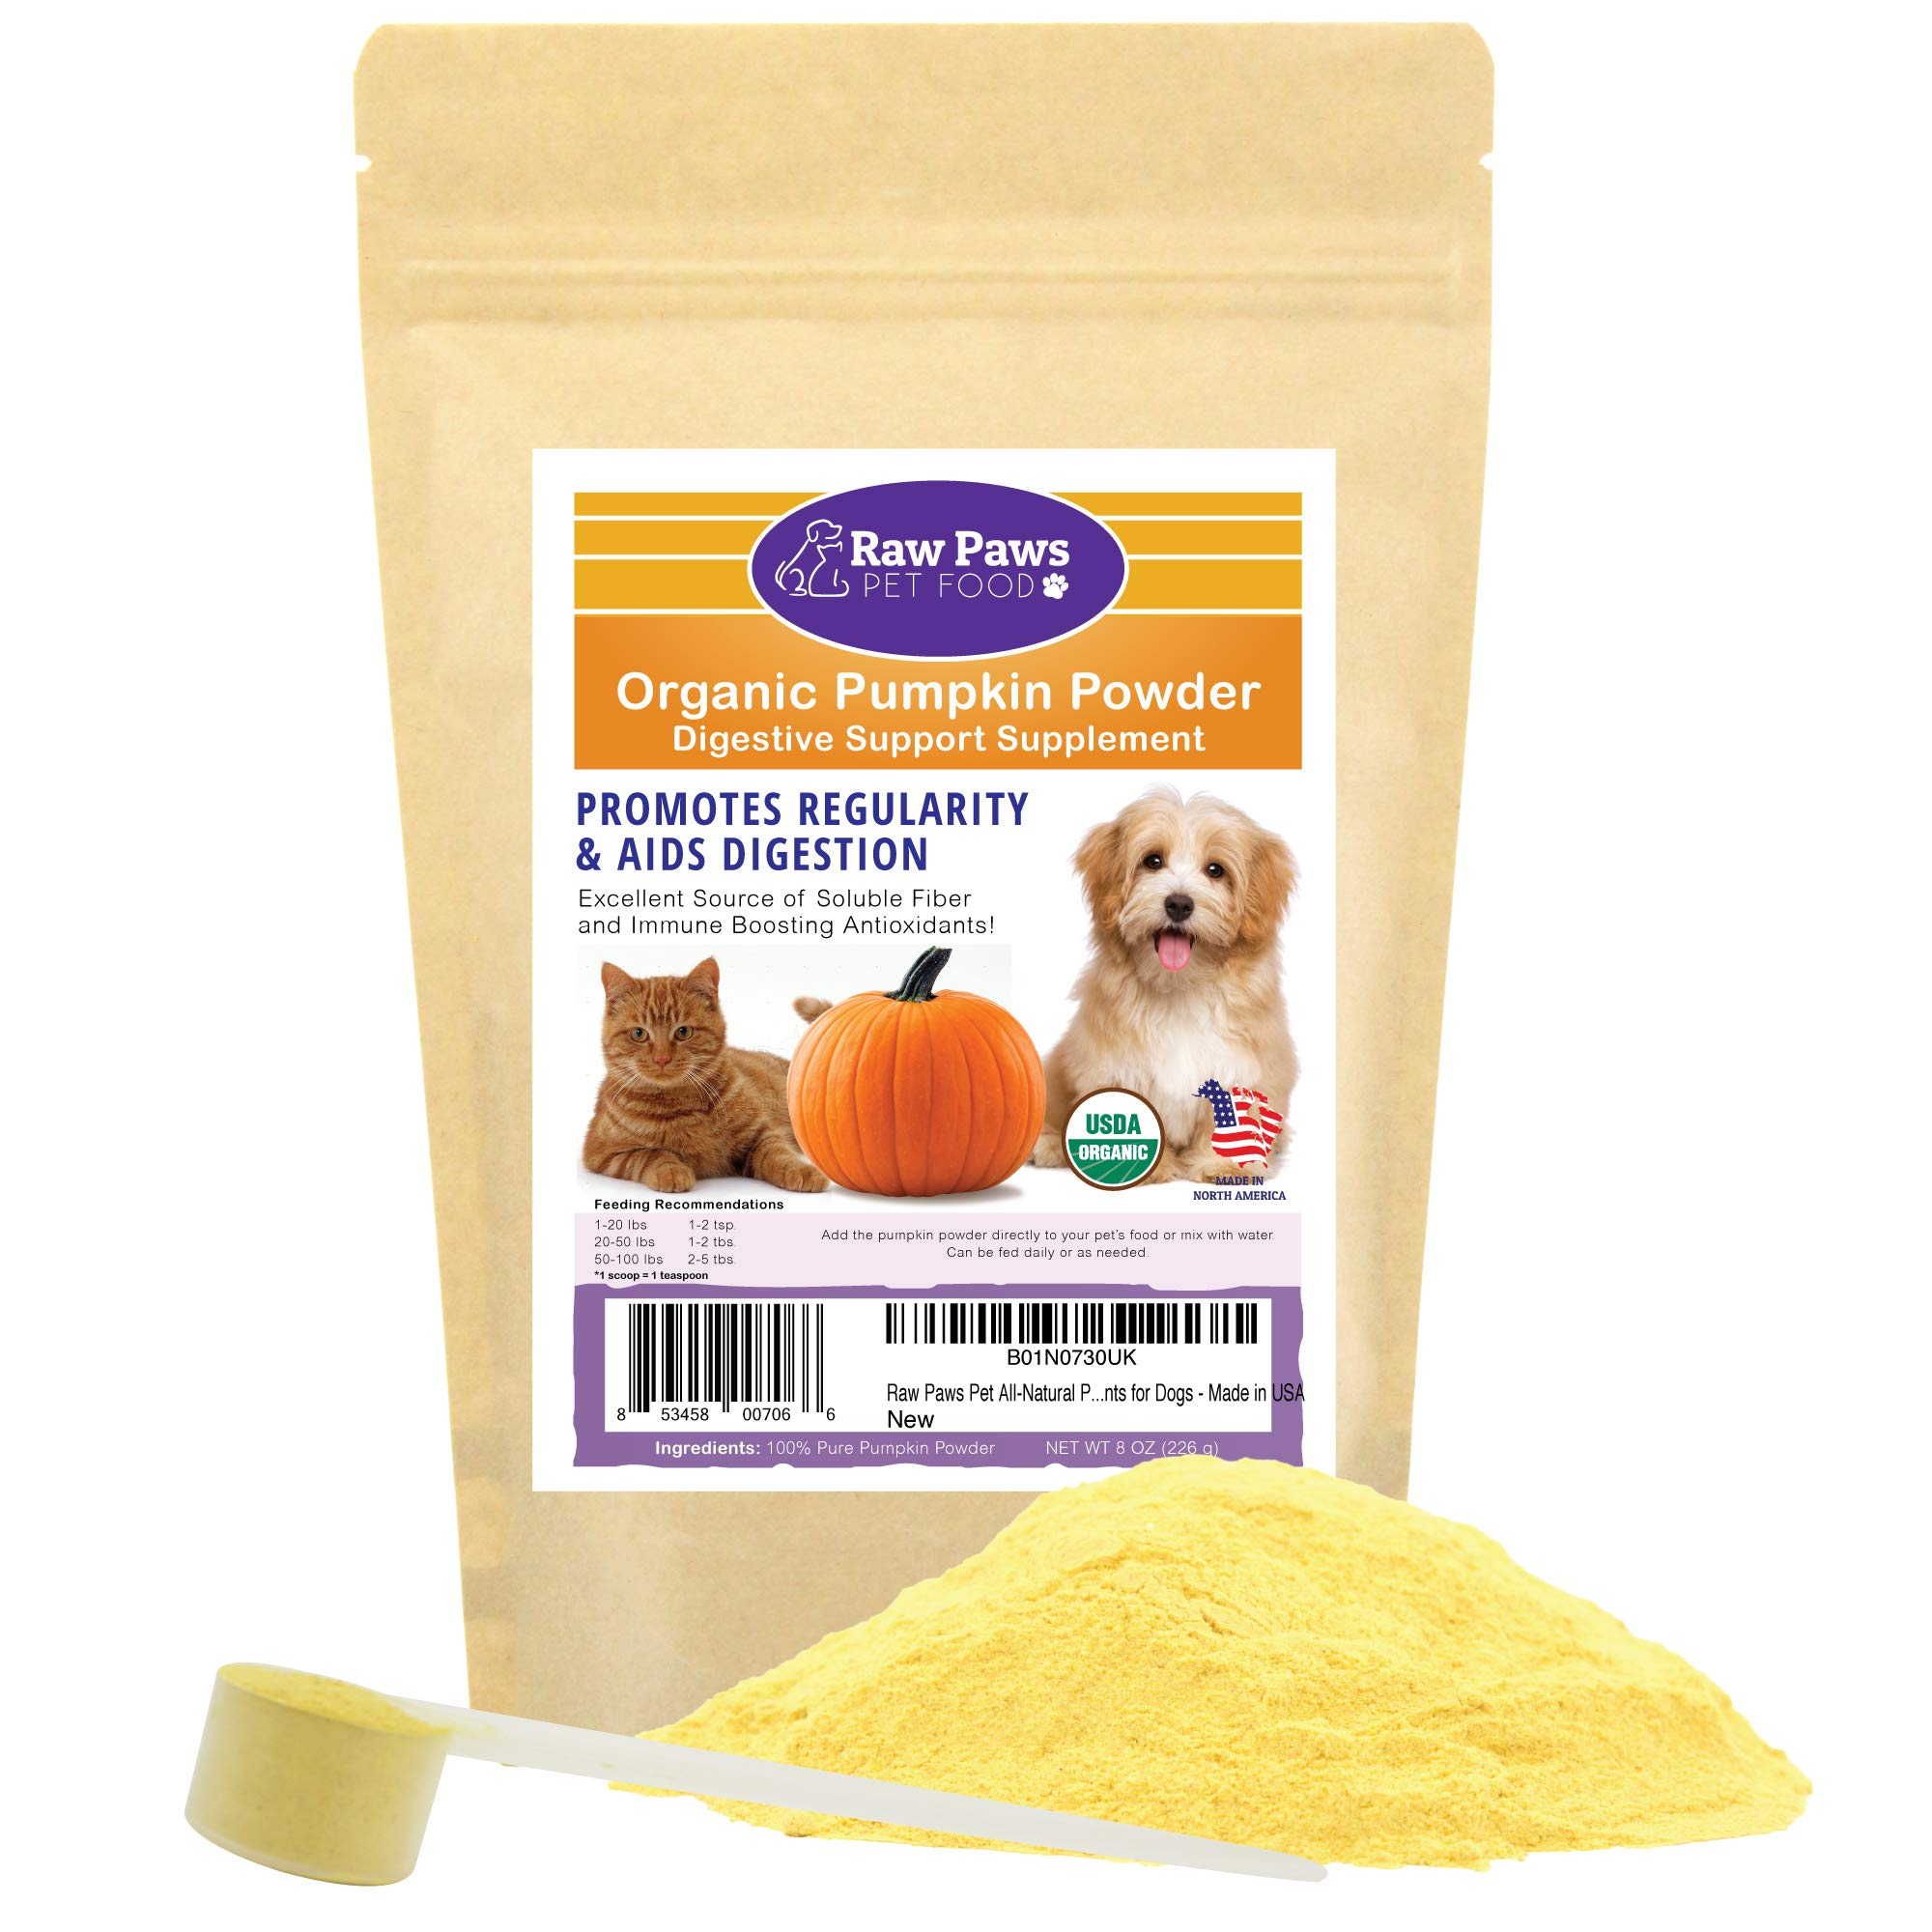 Raw Paws Pet Organic Pure Pumpkin for Dogs & Cats, Powder 8-oz - Fiber for Dogs - Cat & Dog Digestive Supplement for Healthy Stool, Regularity, Dog Gas Relief & Anti Scoot - Cat & Dog Diarrhea Relief by Raw Paws